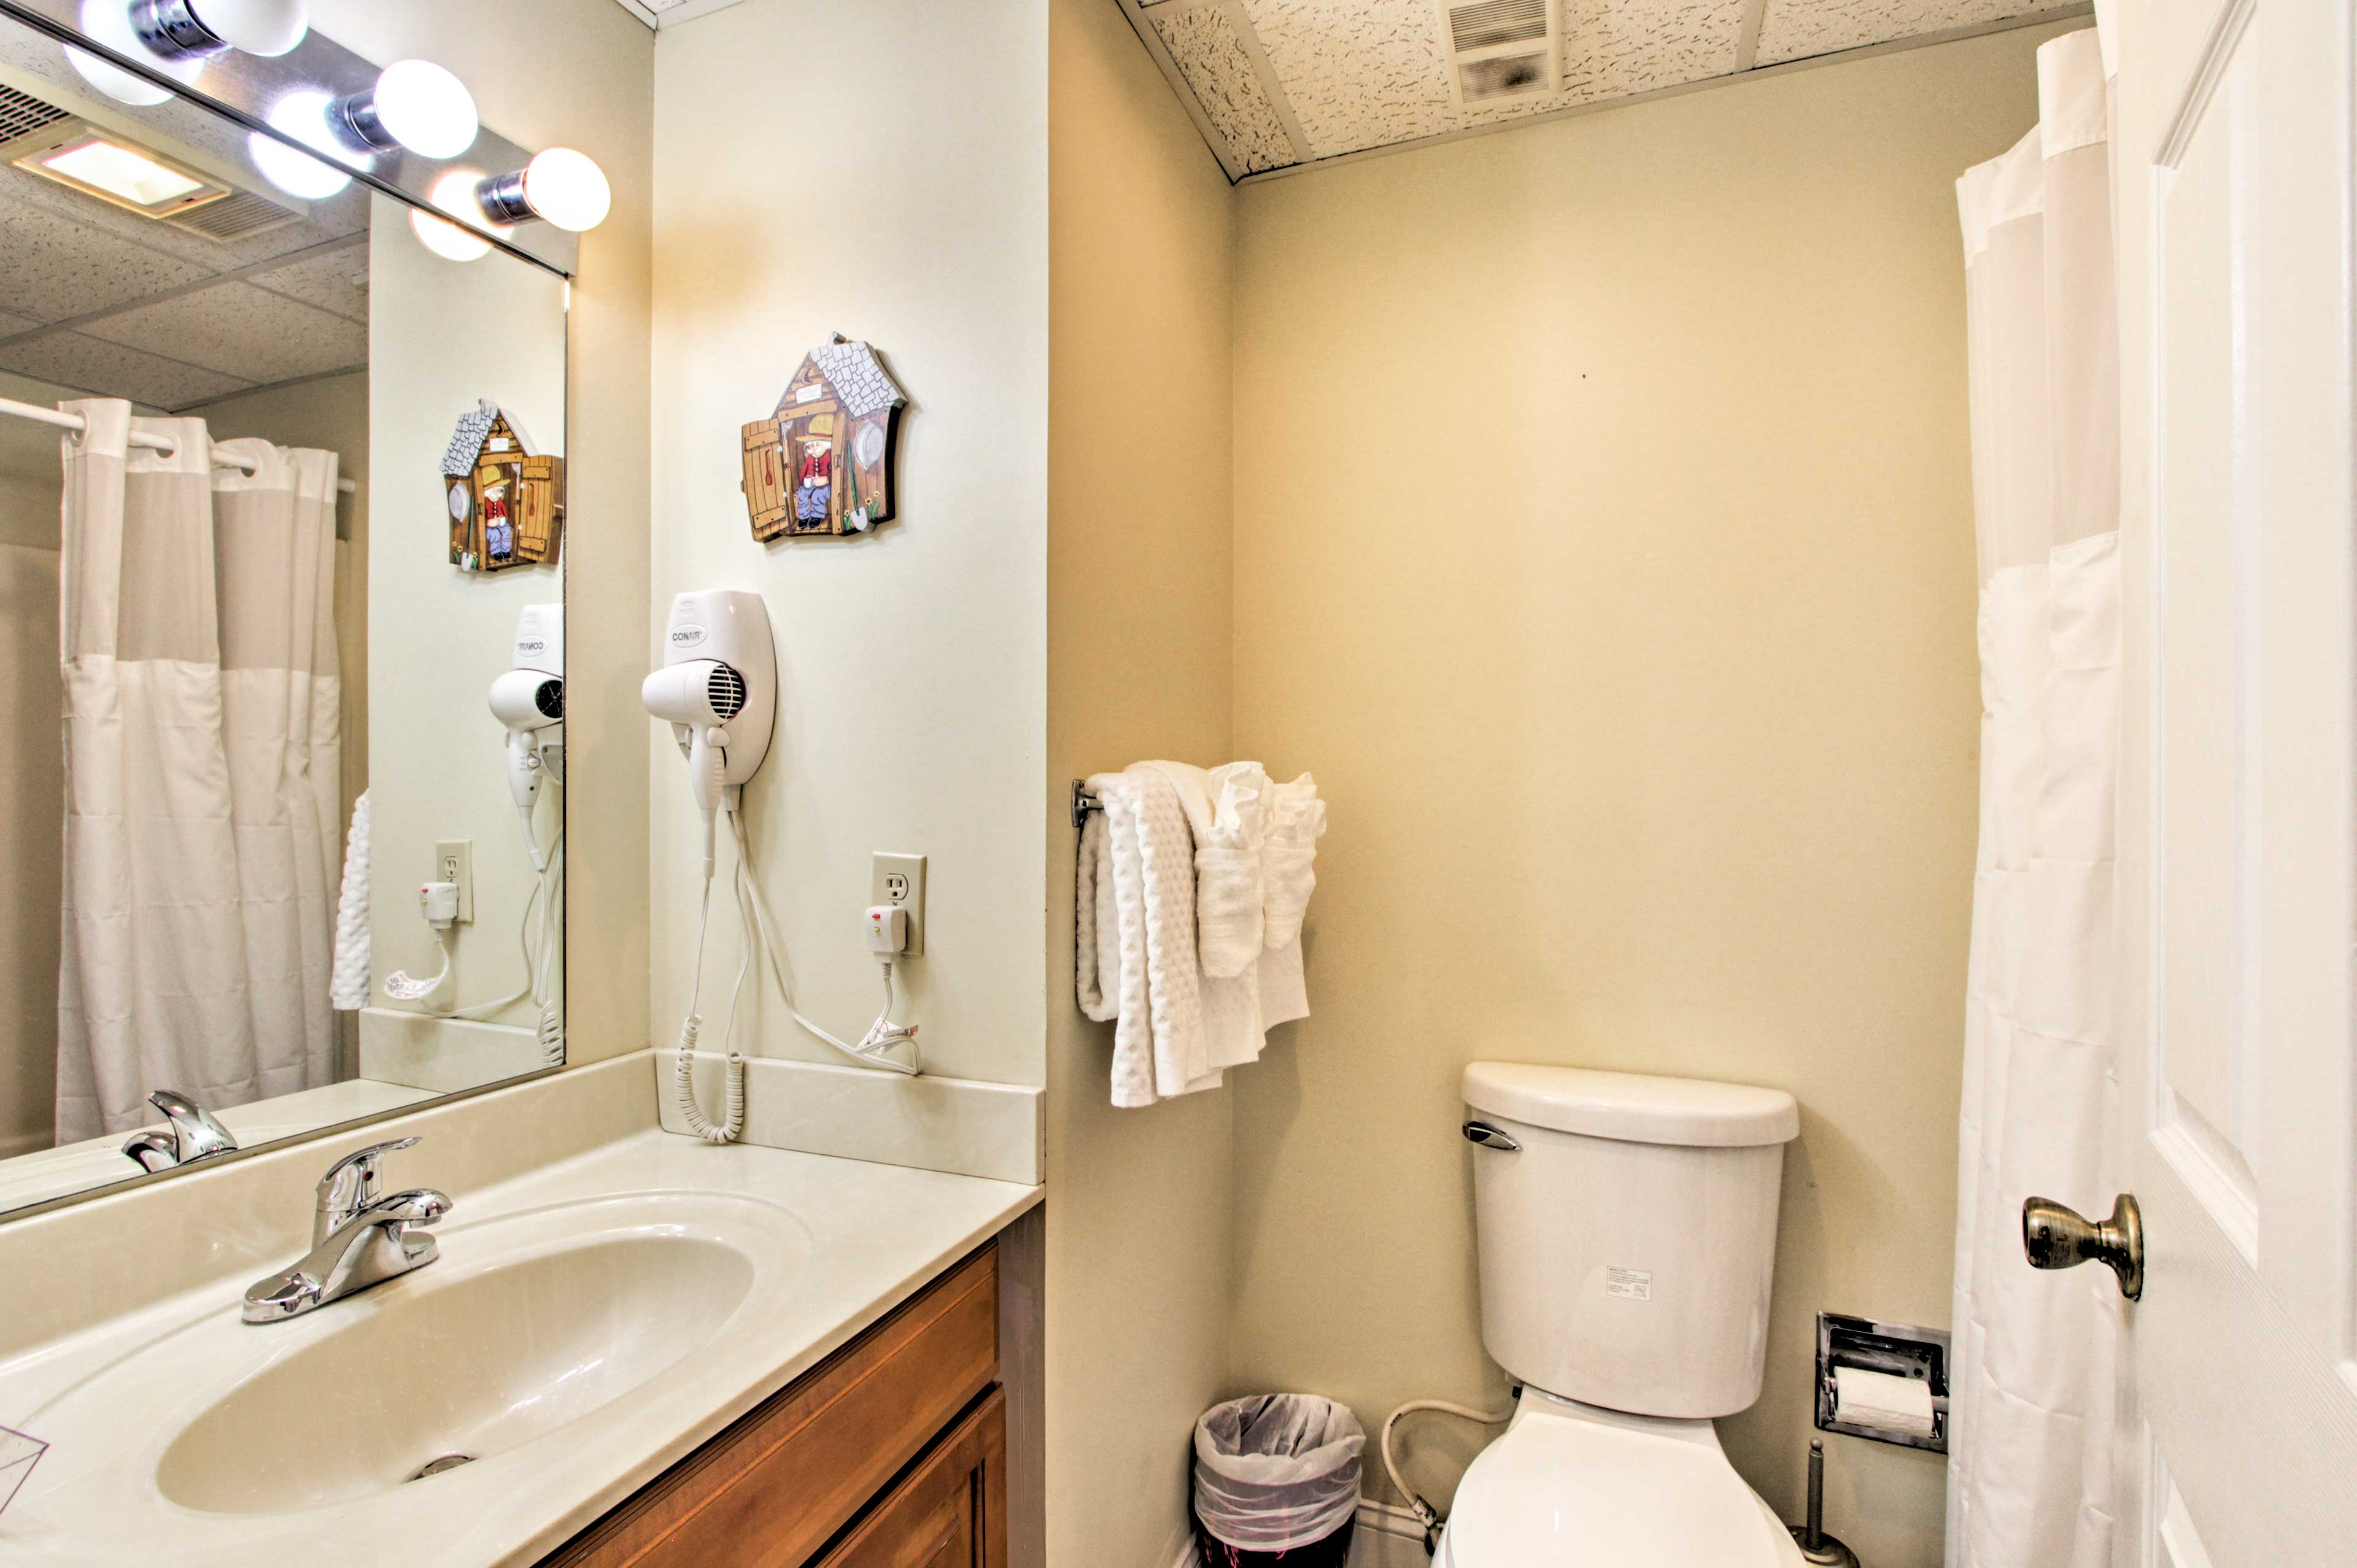 Freshen up in this clean bathroom before evening activities.